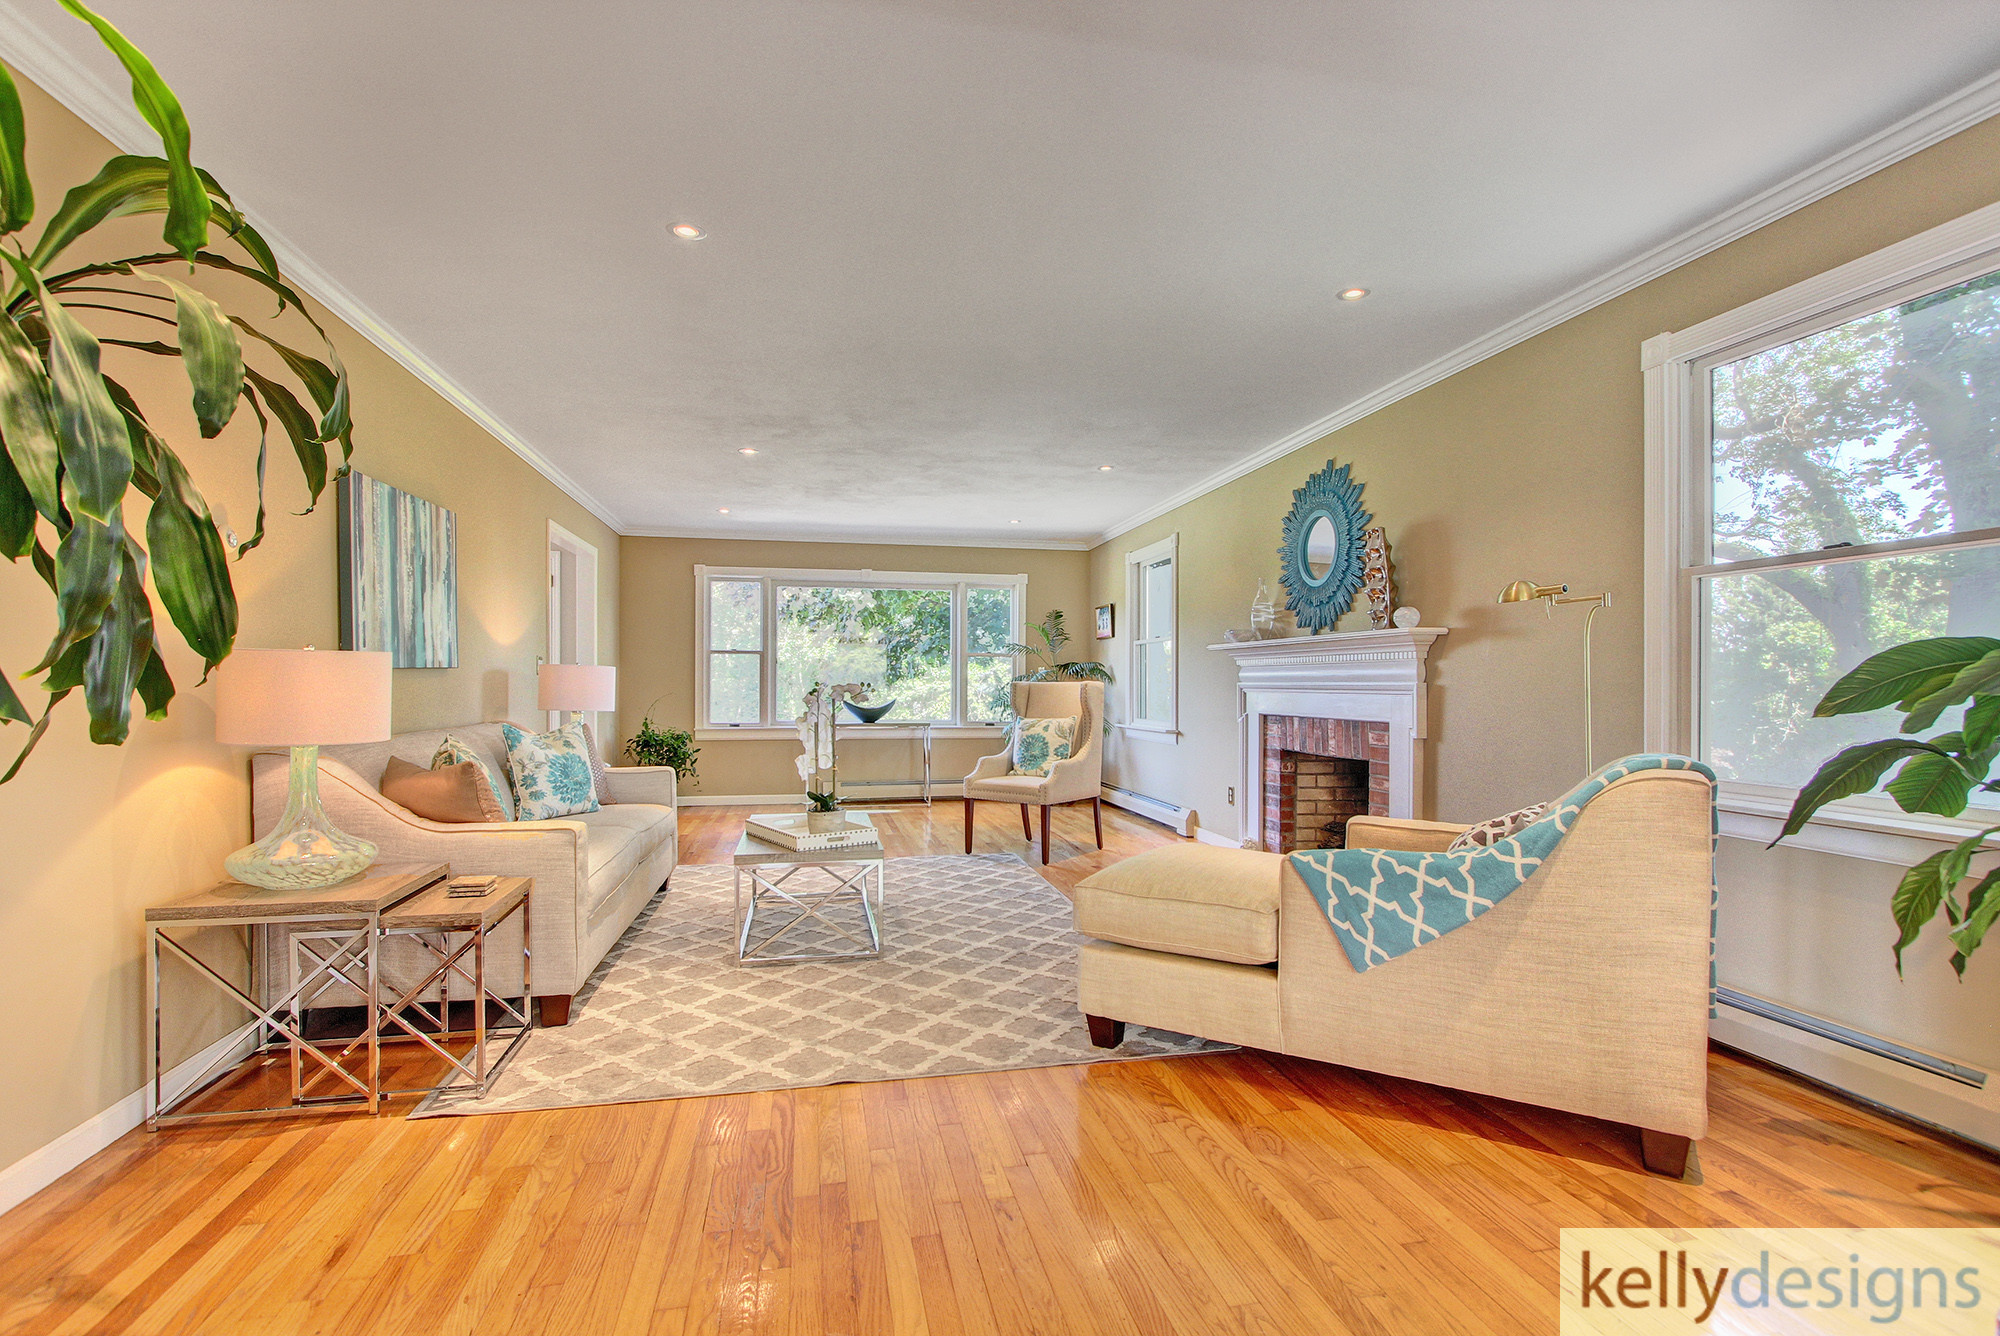 Living Room - Fulling Mill Staging  - Home Staging by kellydesigns